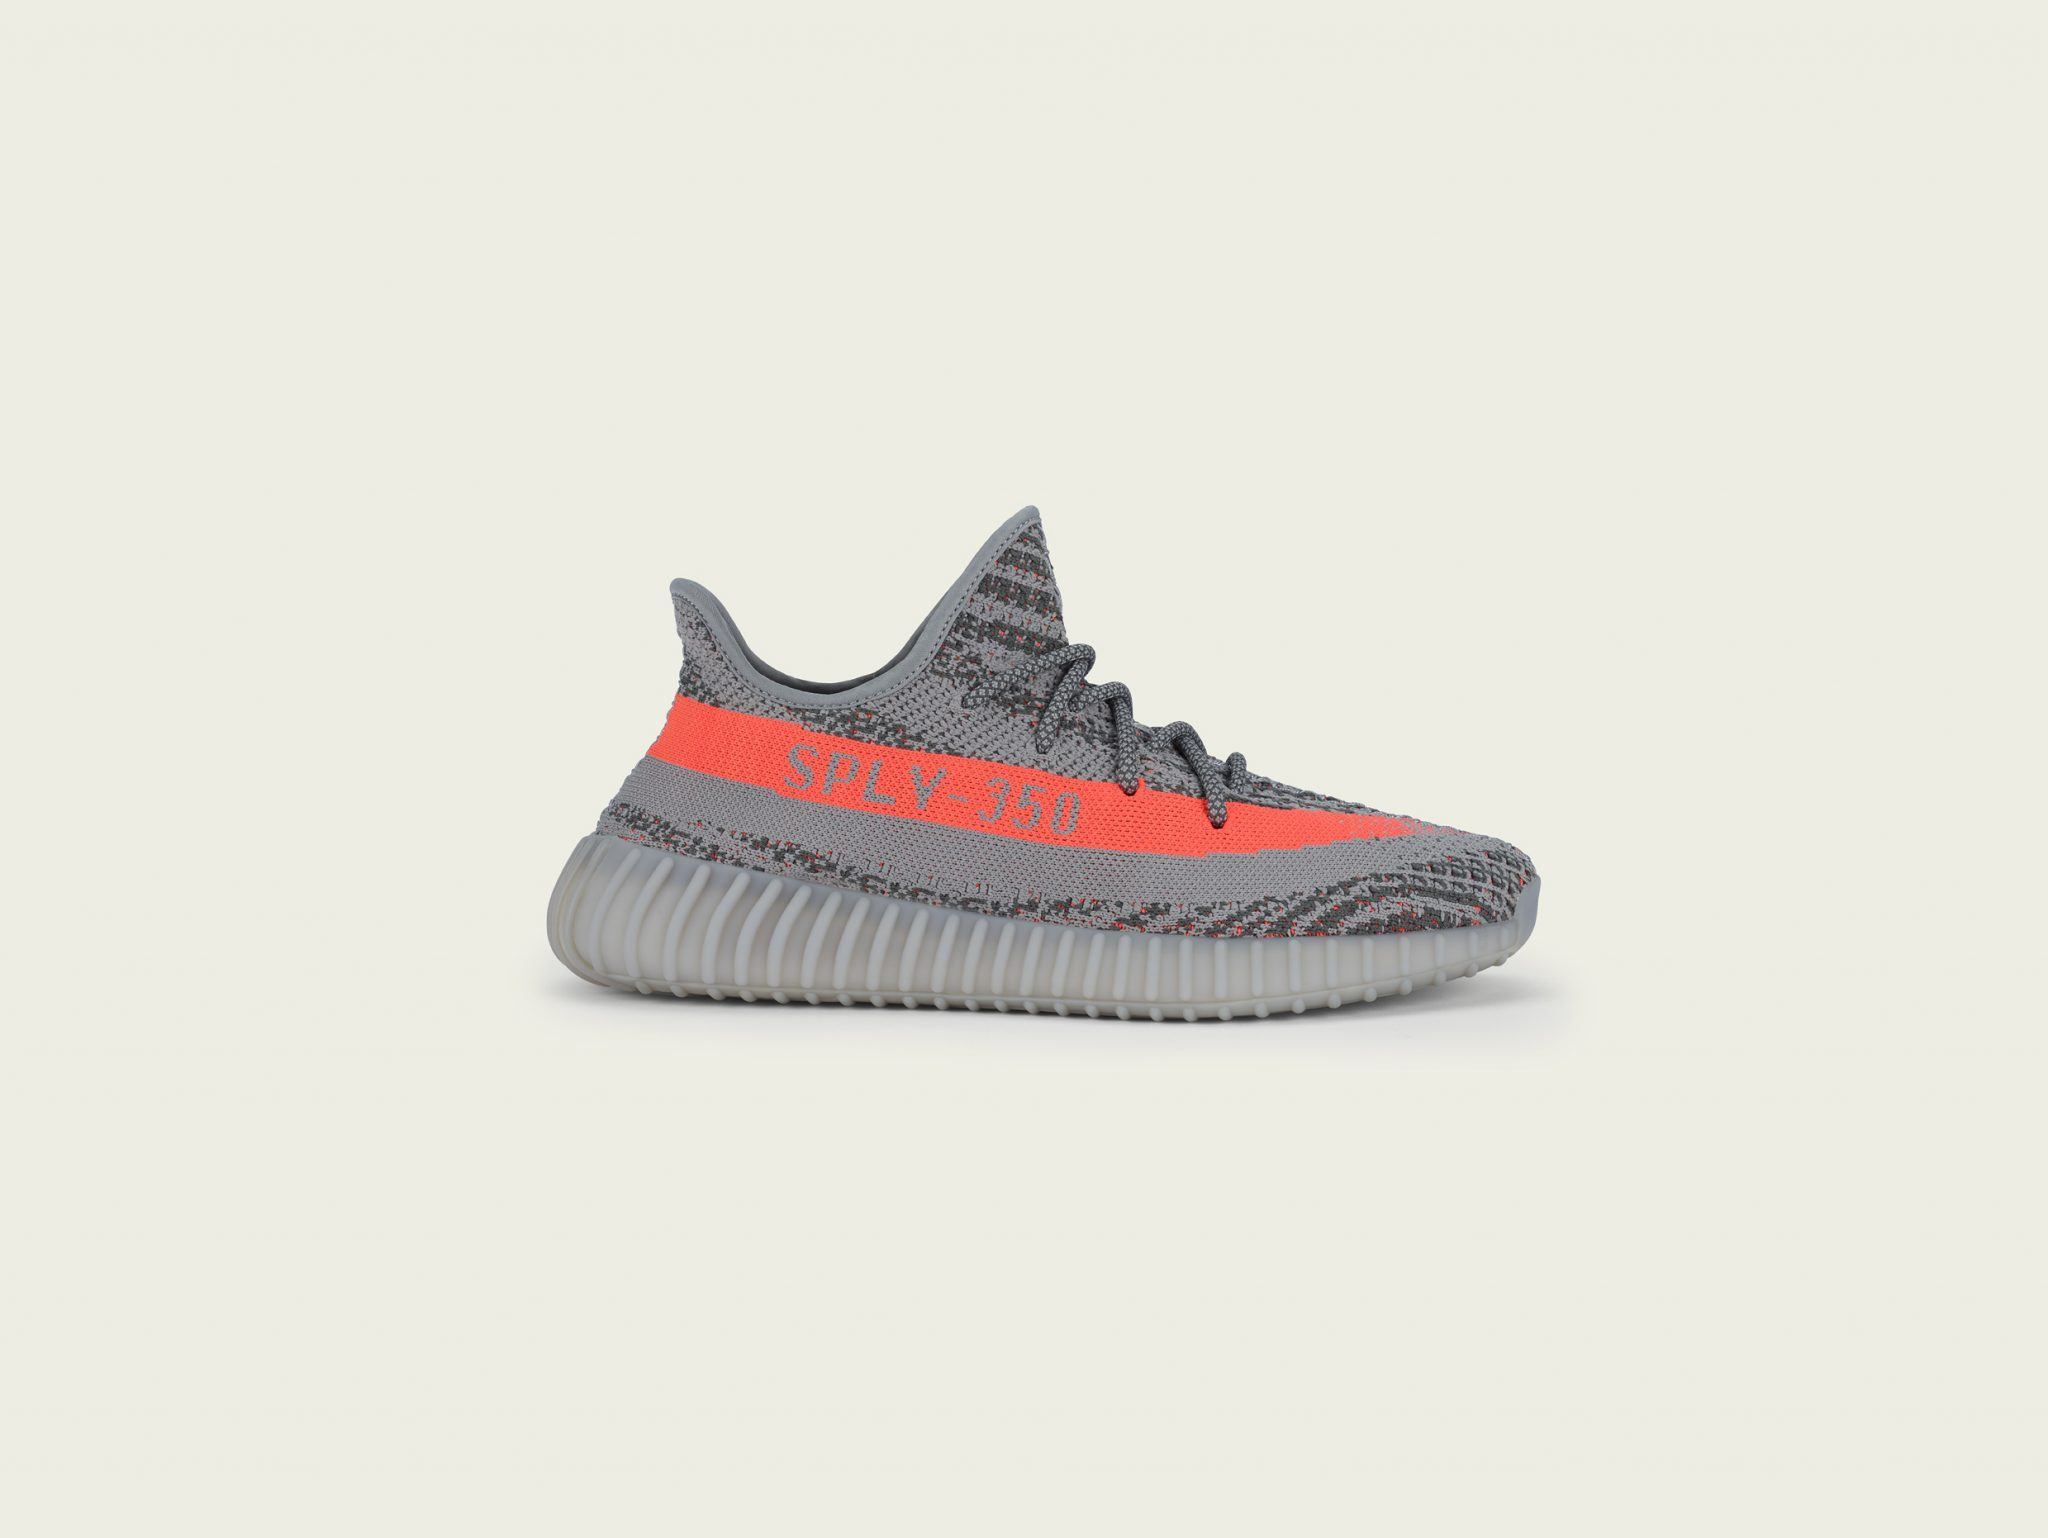 Yeezy boost 350 V2 solar red infantuls 'sply 350' white red Online